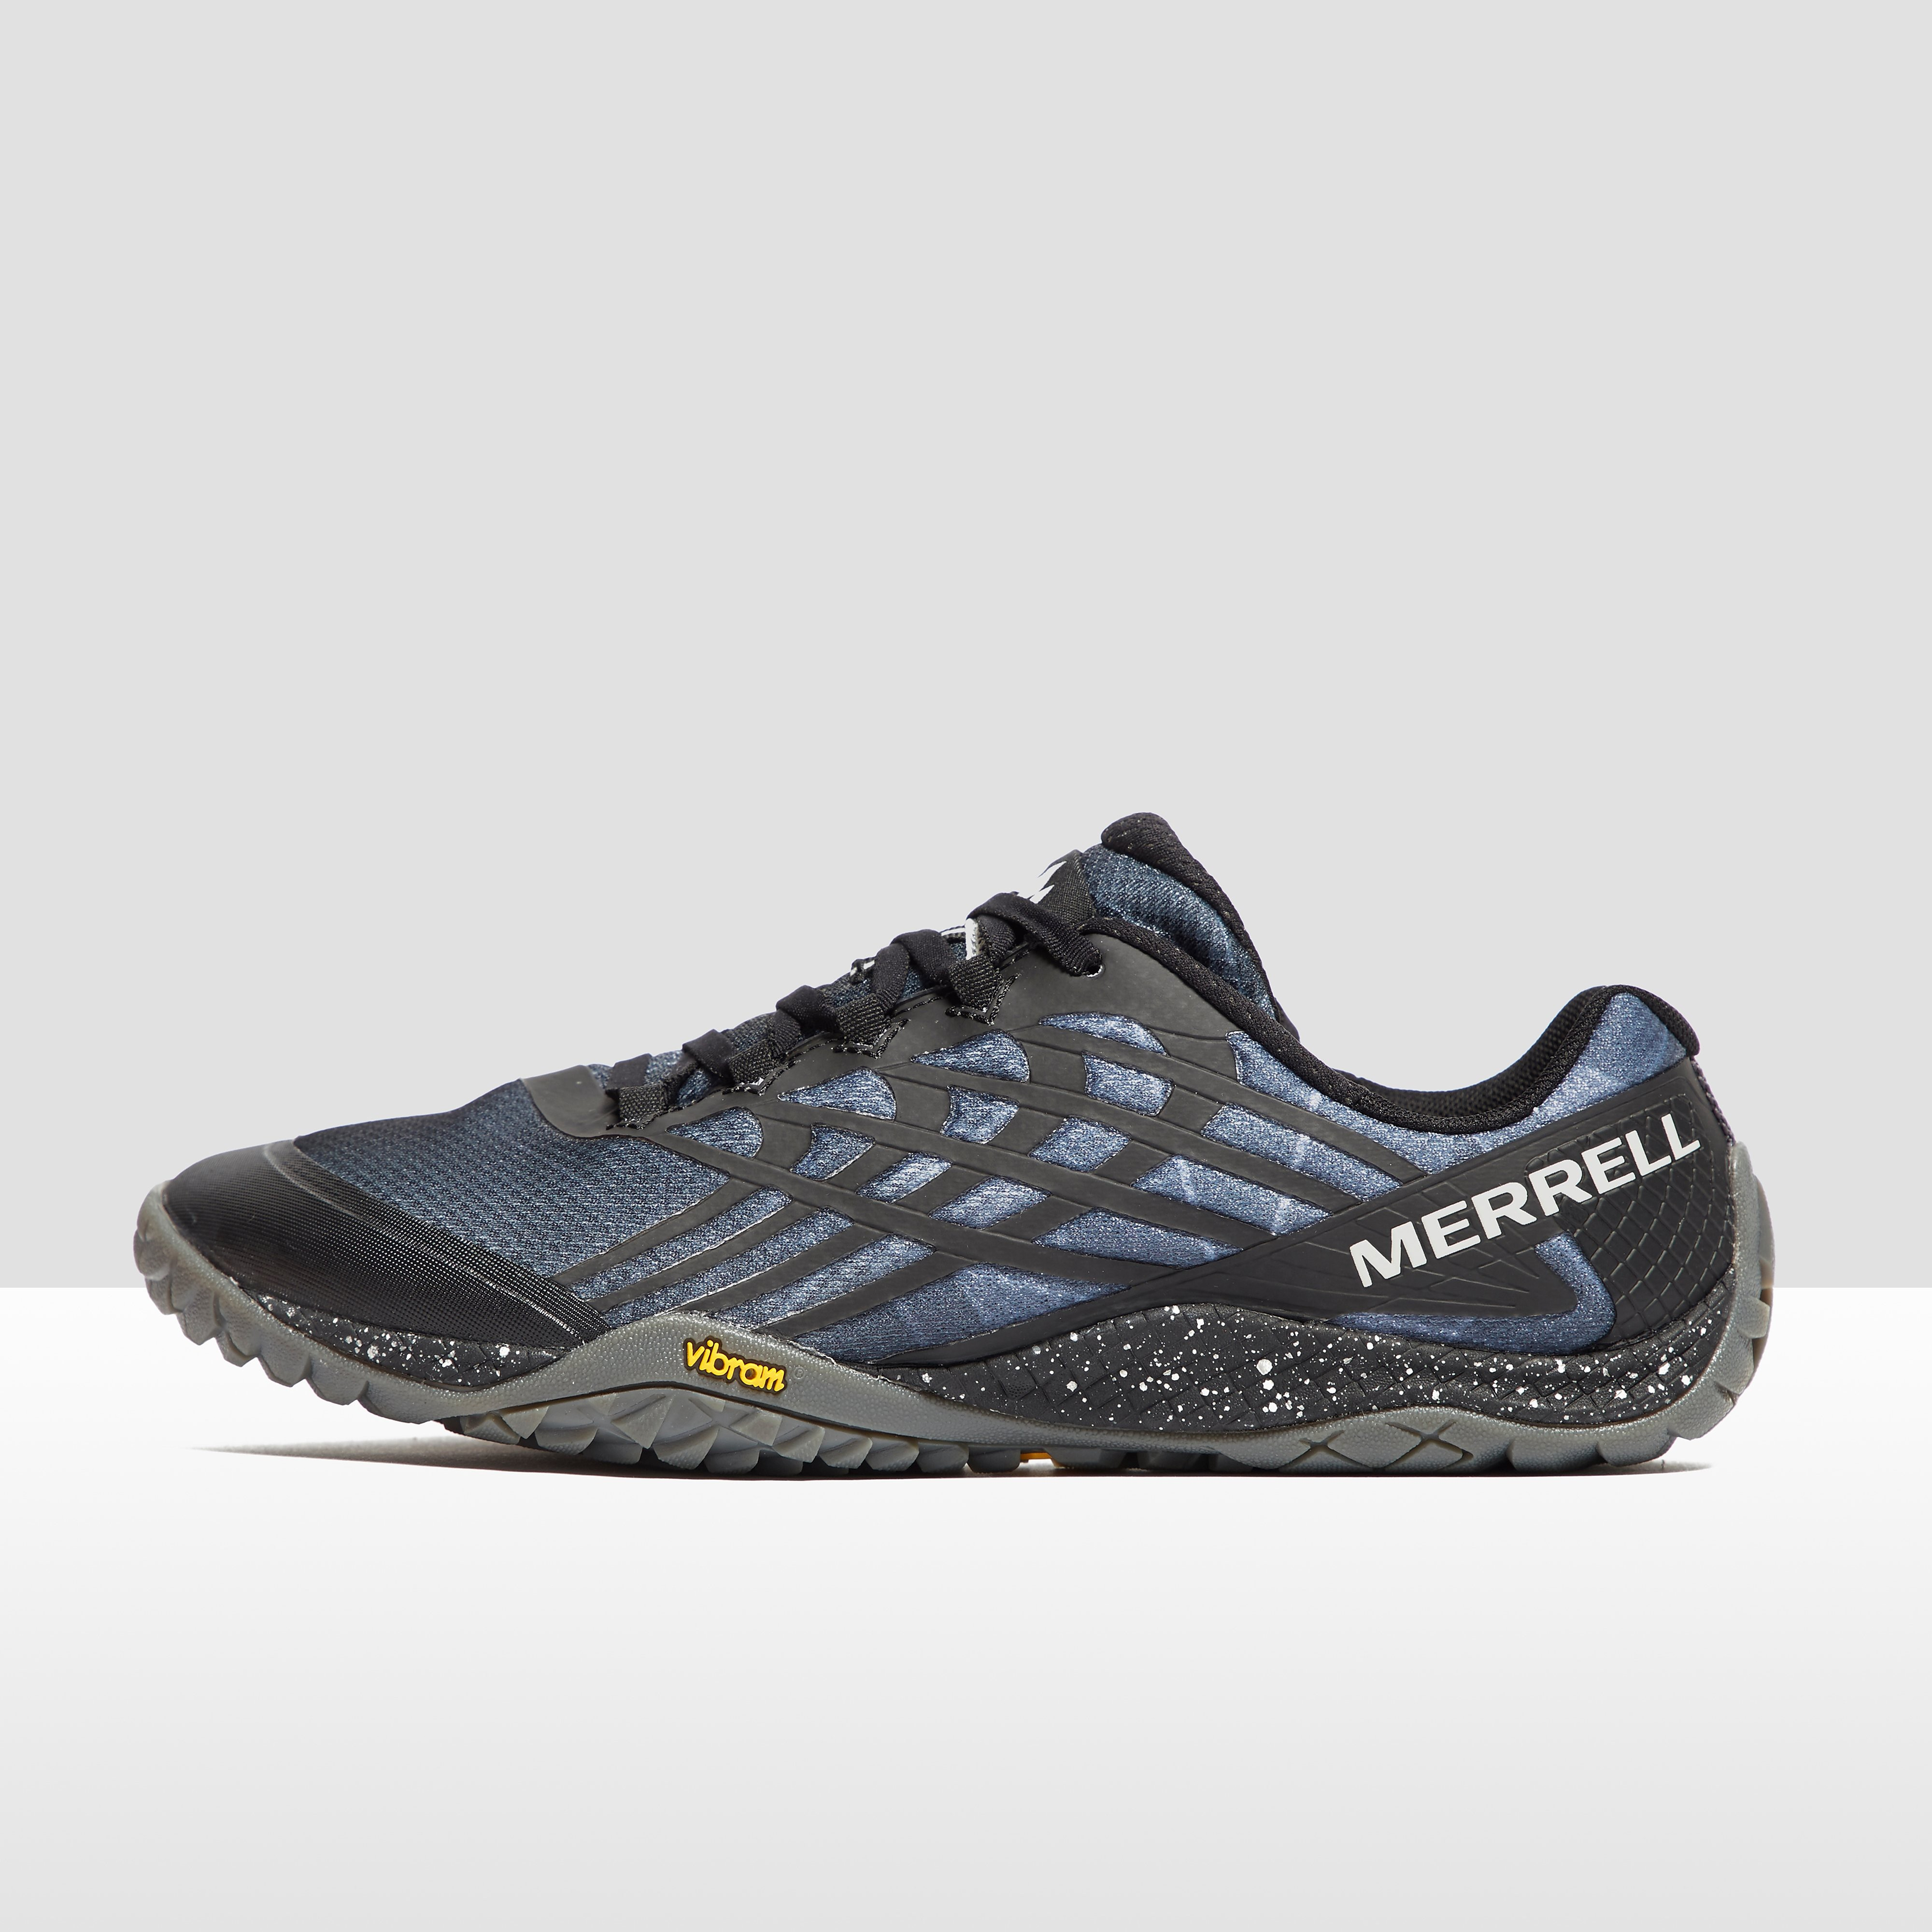 Merrell Trail Glove 4 Men's Trial Running Shoes